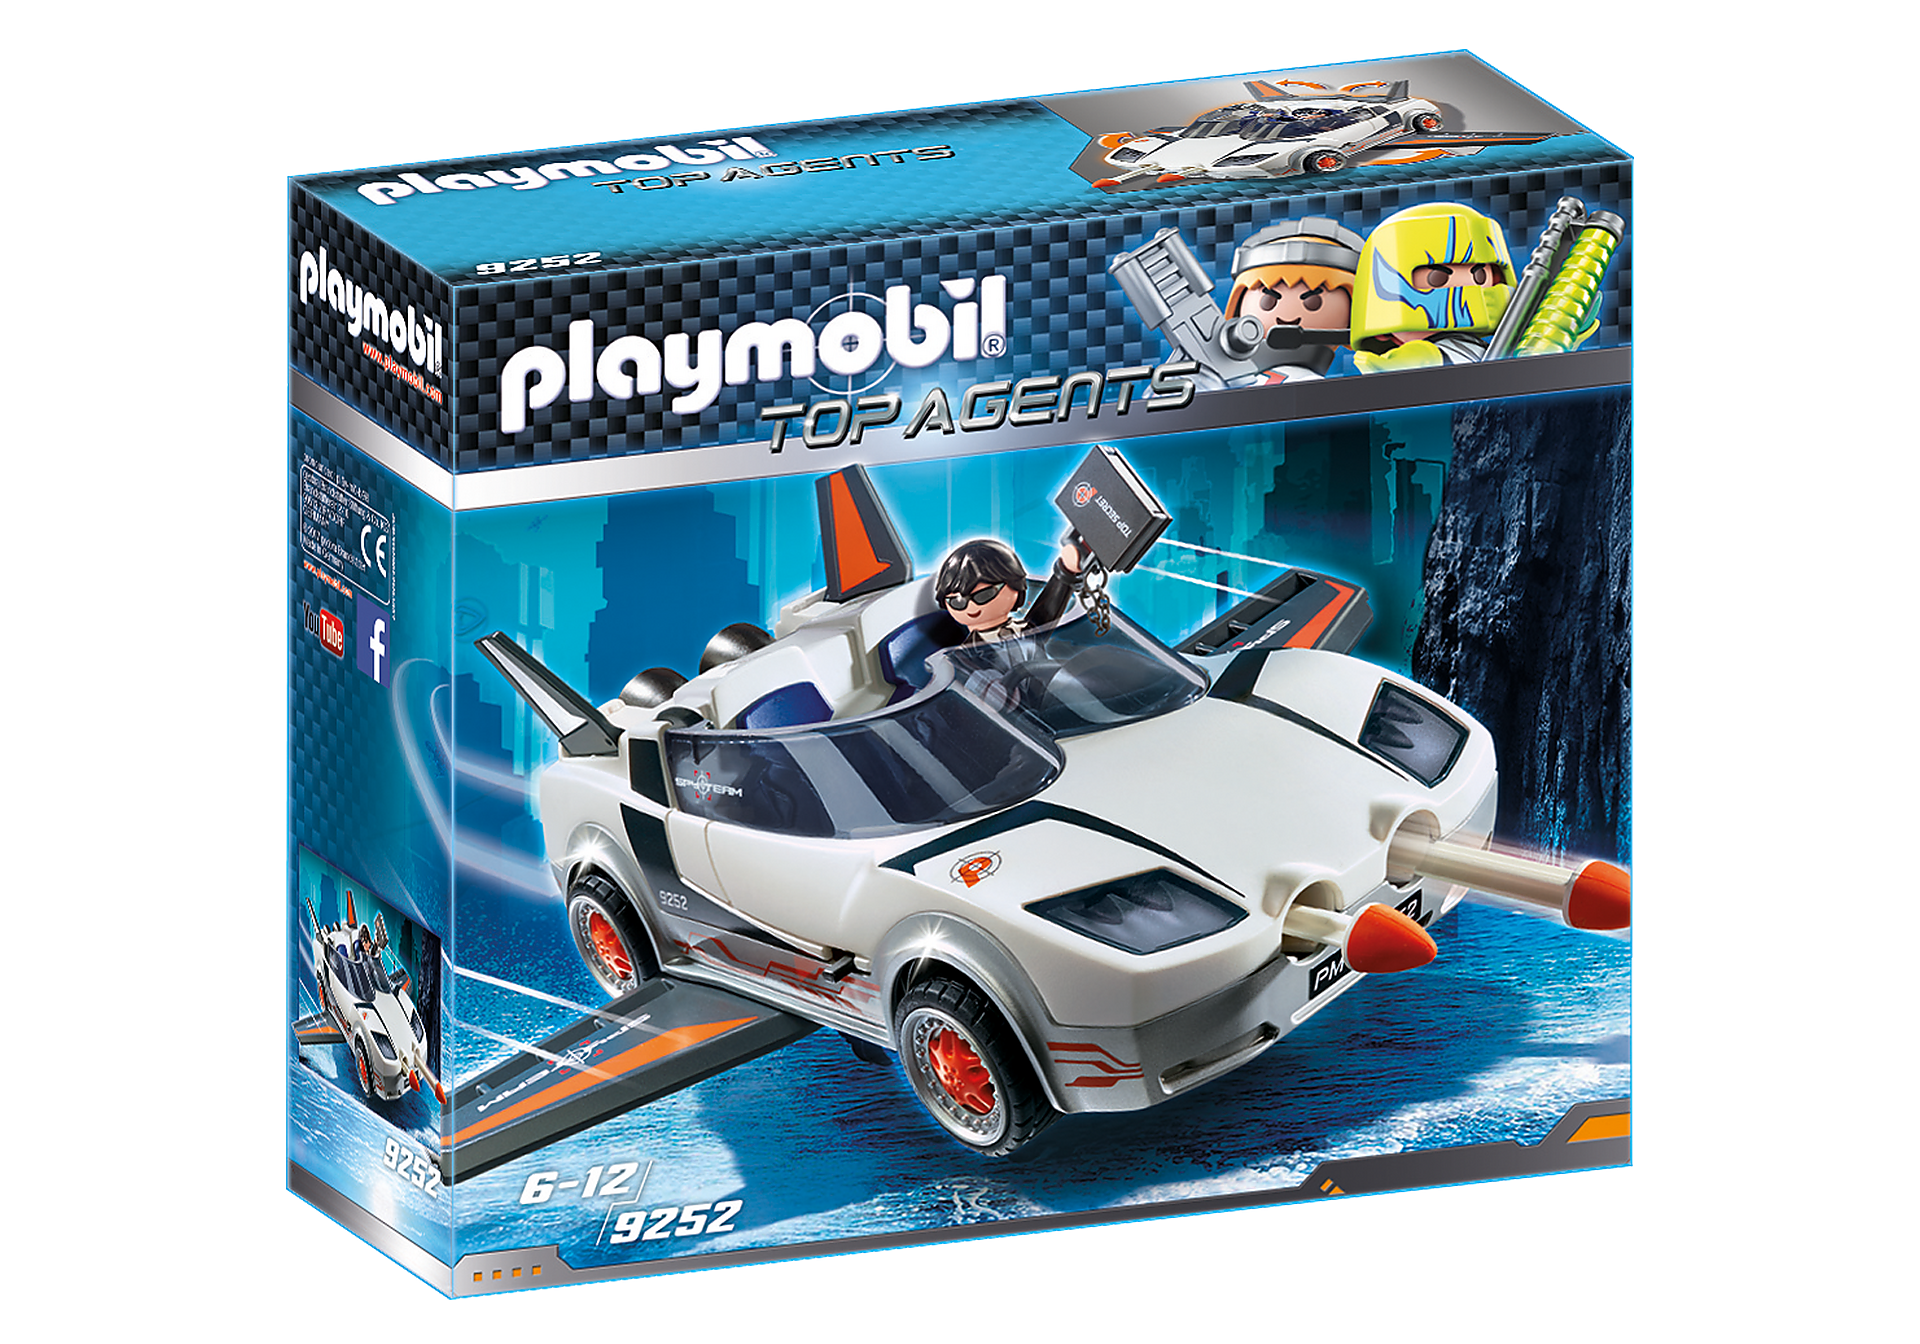 http://media.playmobil.com/i/playmobil/9252_product_box_front/Agent P. i racer